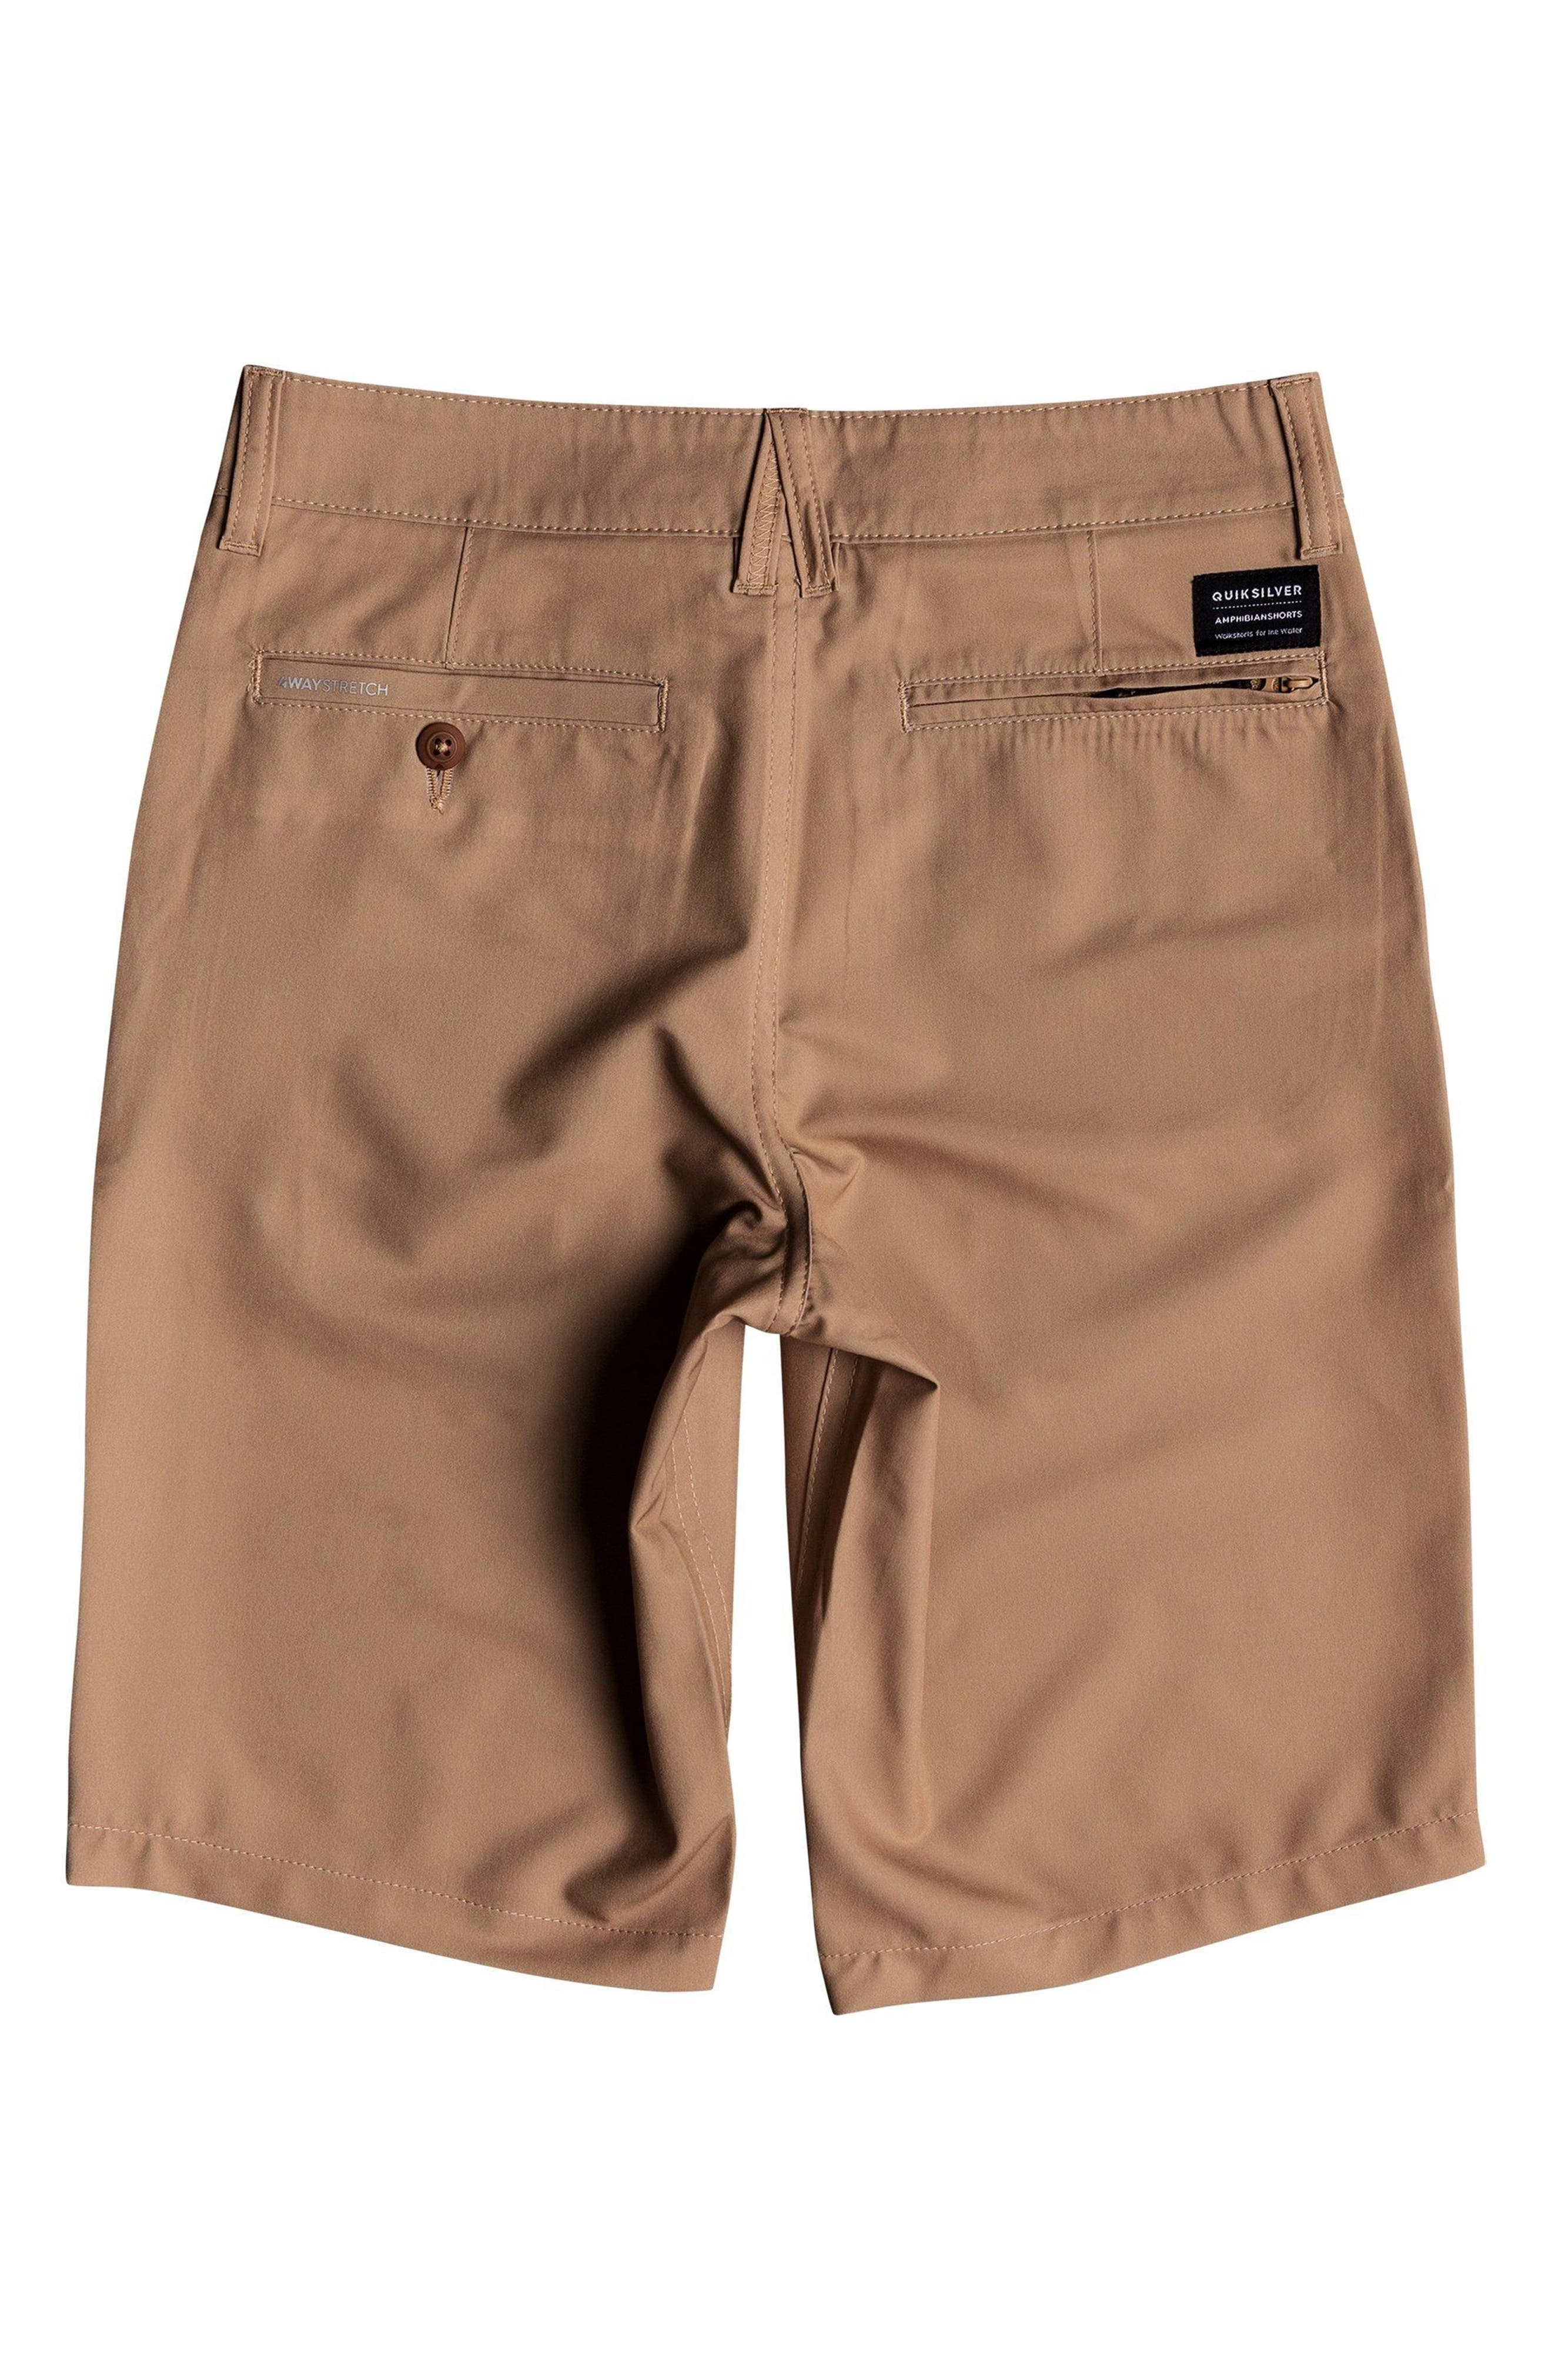 Union Amphibian Hybrid Shorts,                             Alternate thumbnail 3, color,